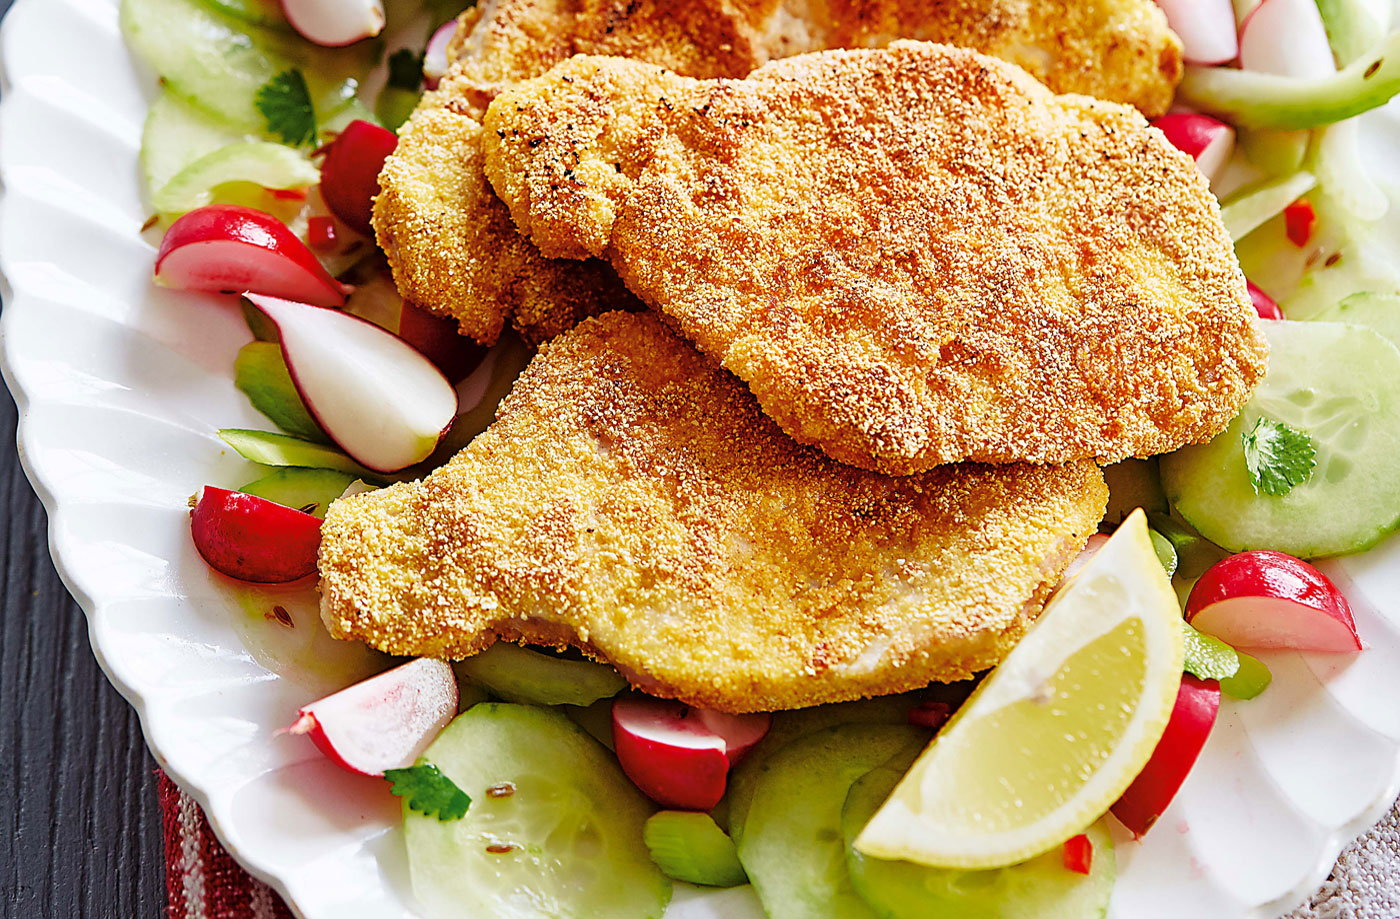 Pork schnitzel with spiced cucumber salad recipe